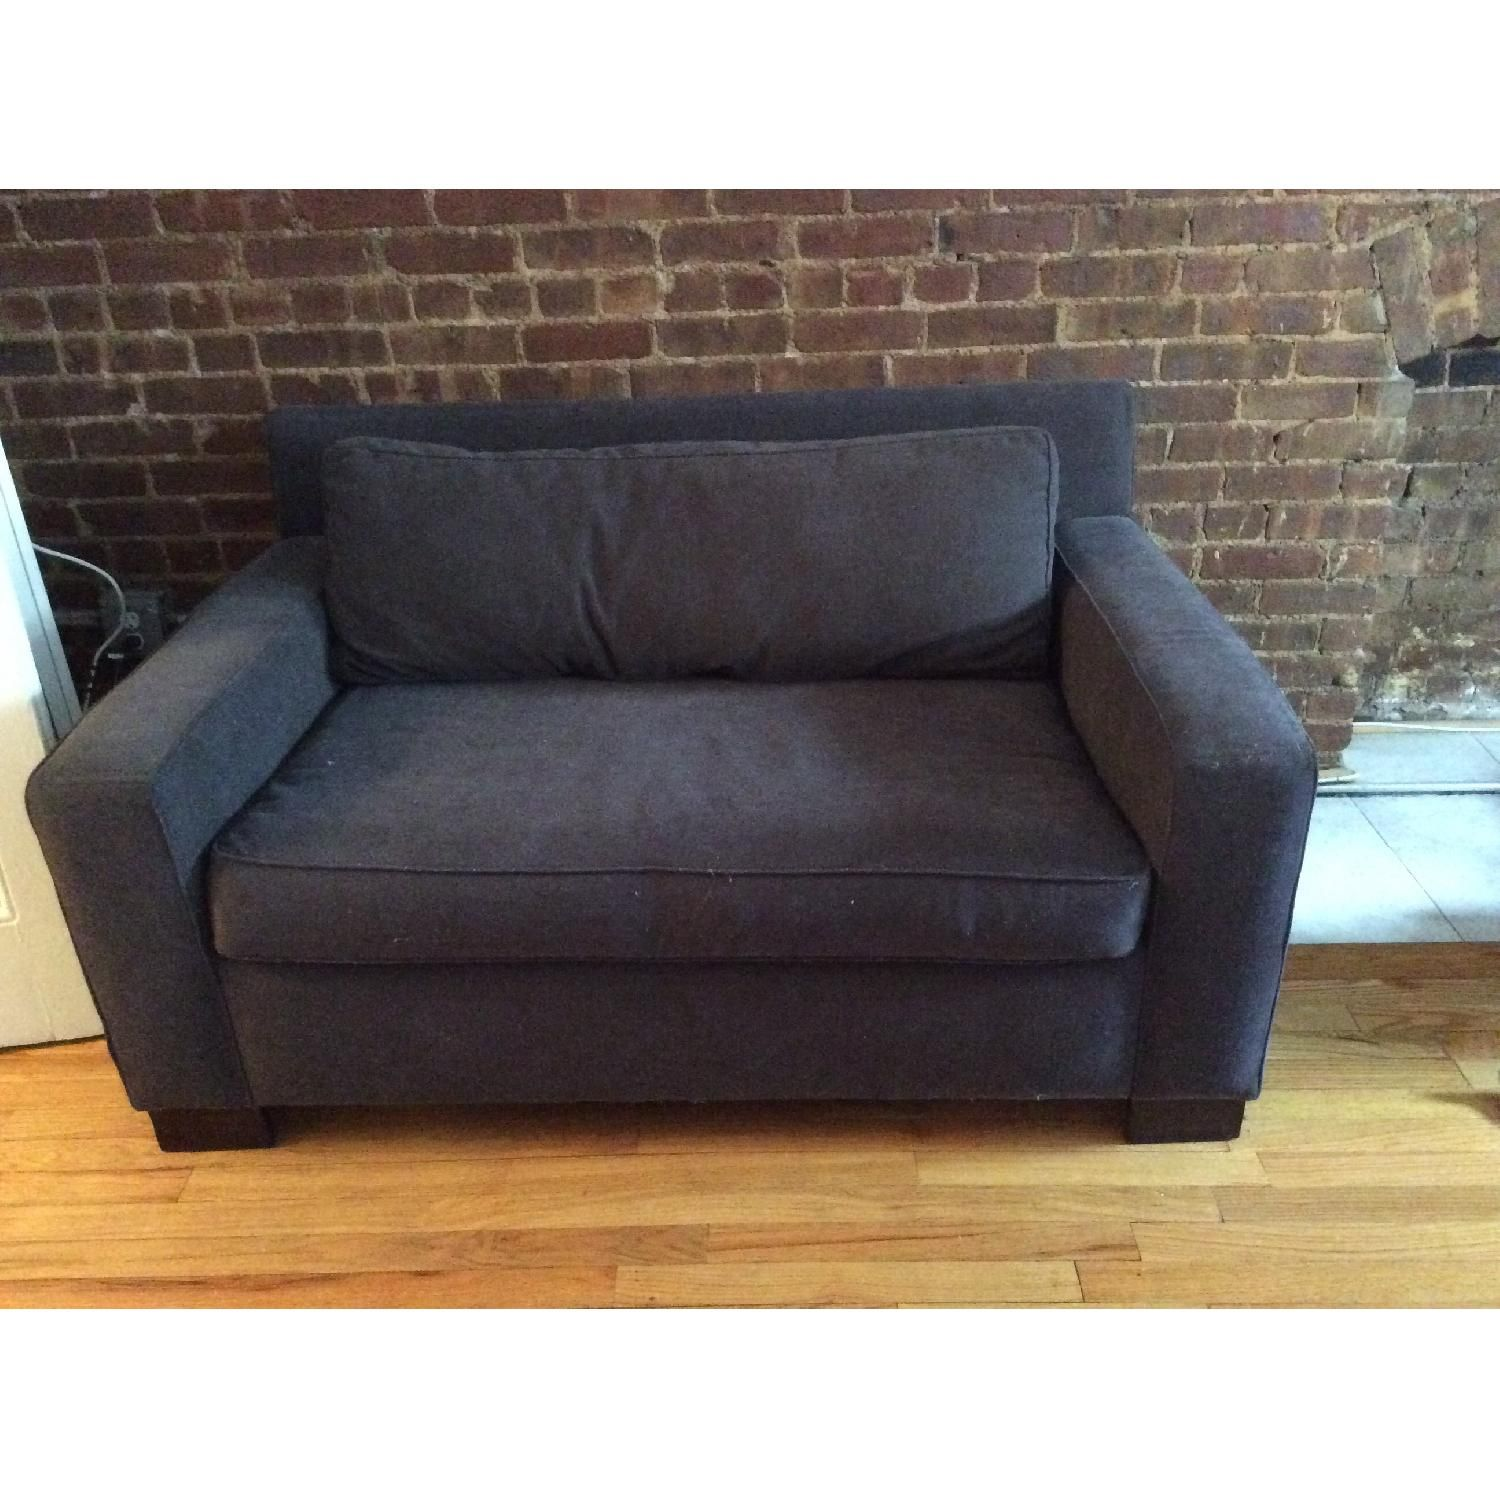 Surprising West Elm Single Sleeper Sofa 0 Your First Apartment Alphanode Cool Chair Designs And Ideas Alphanodeonline